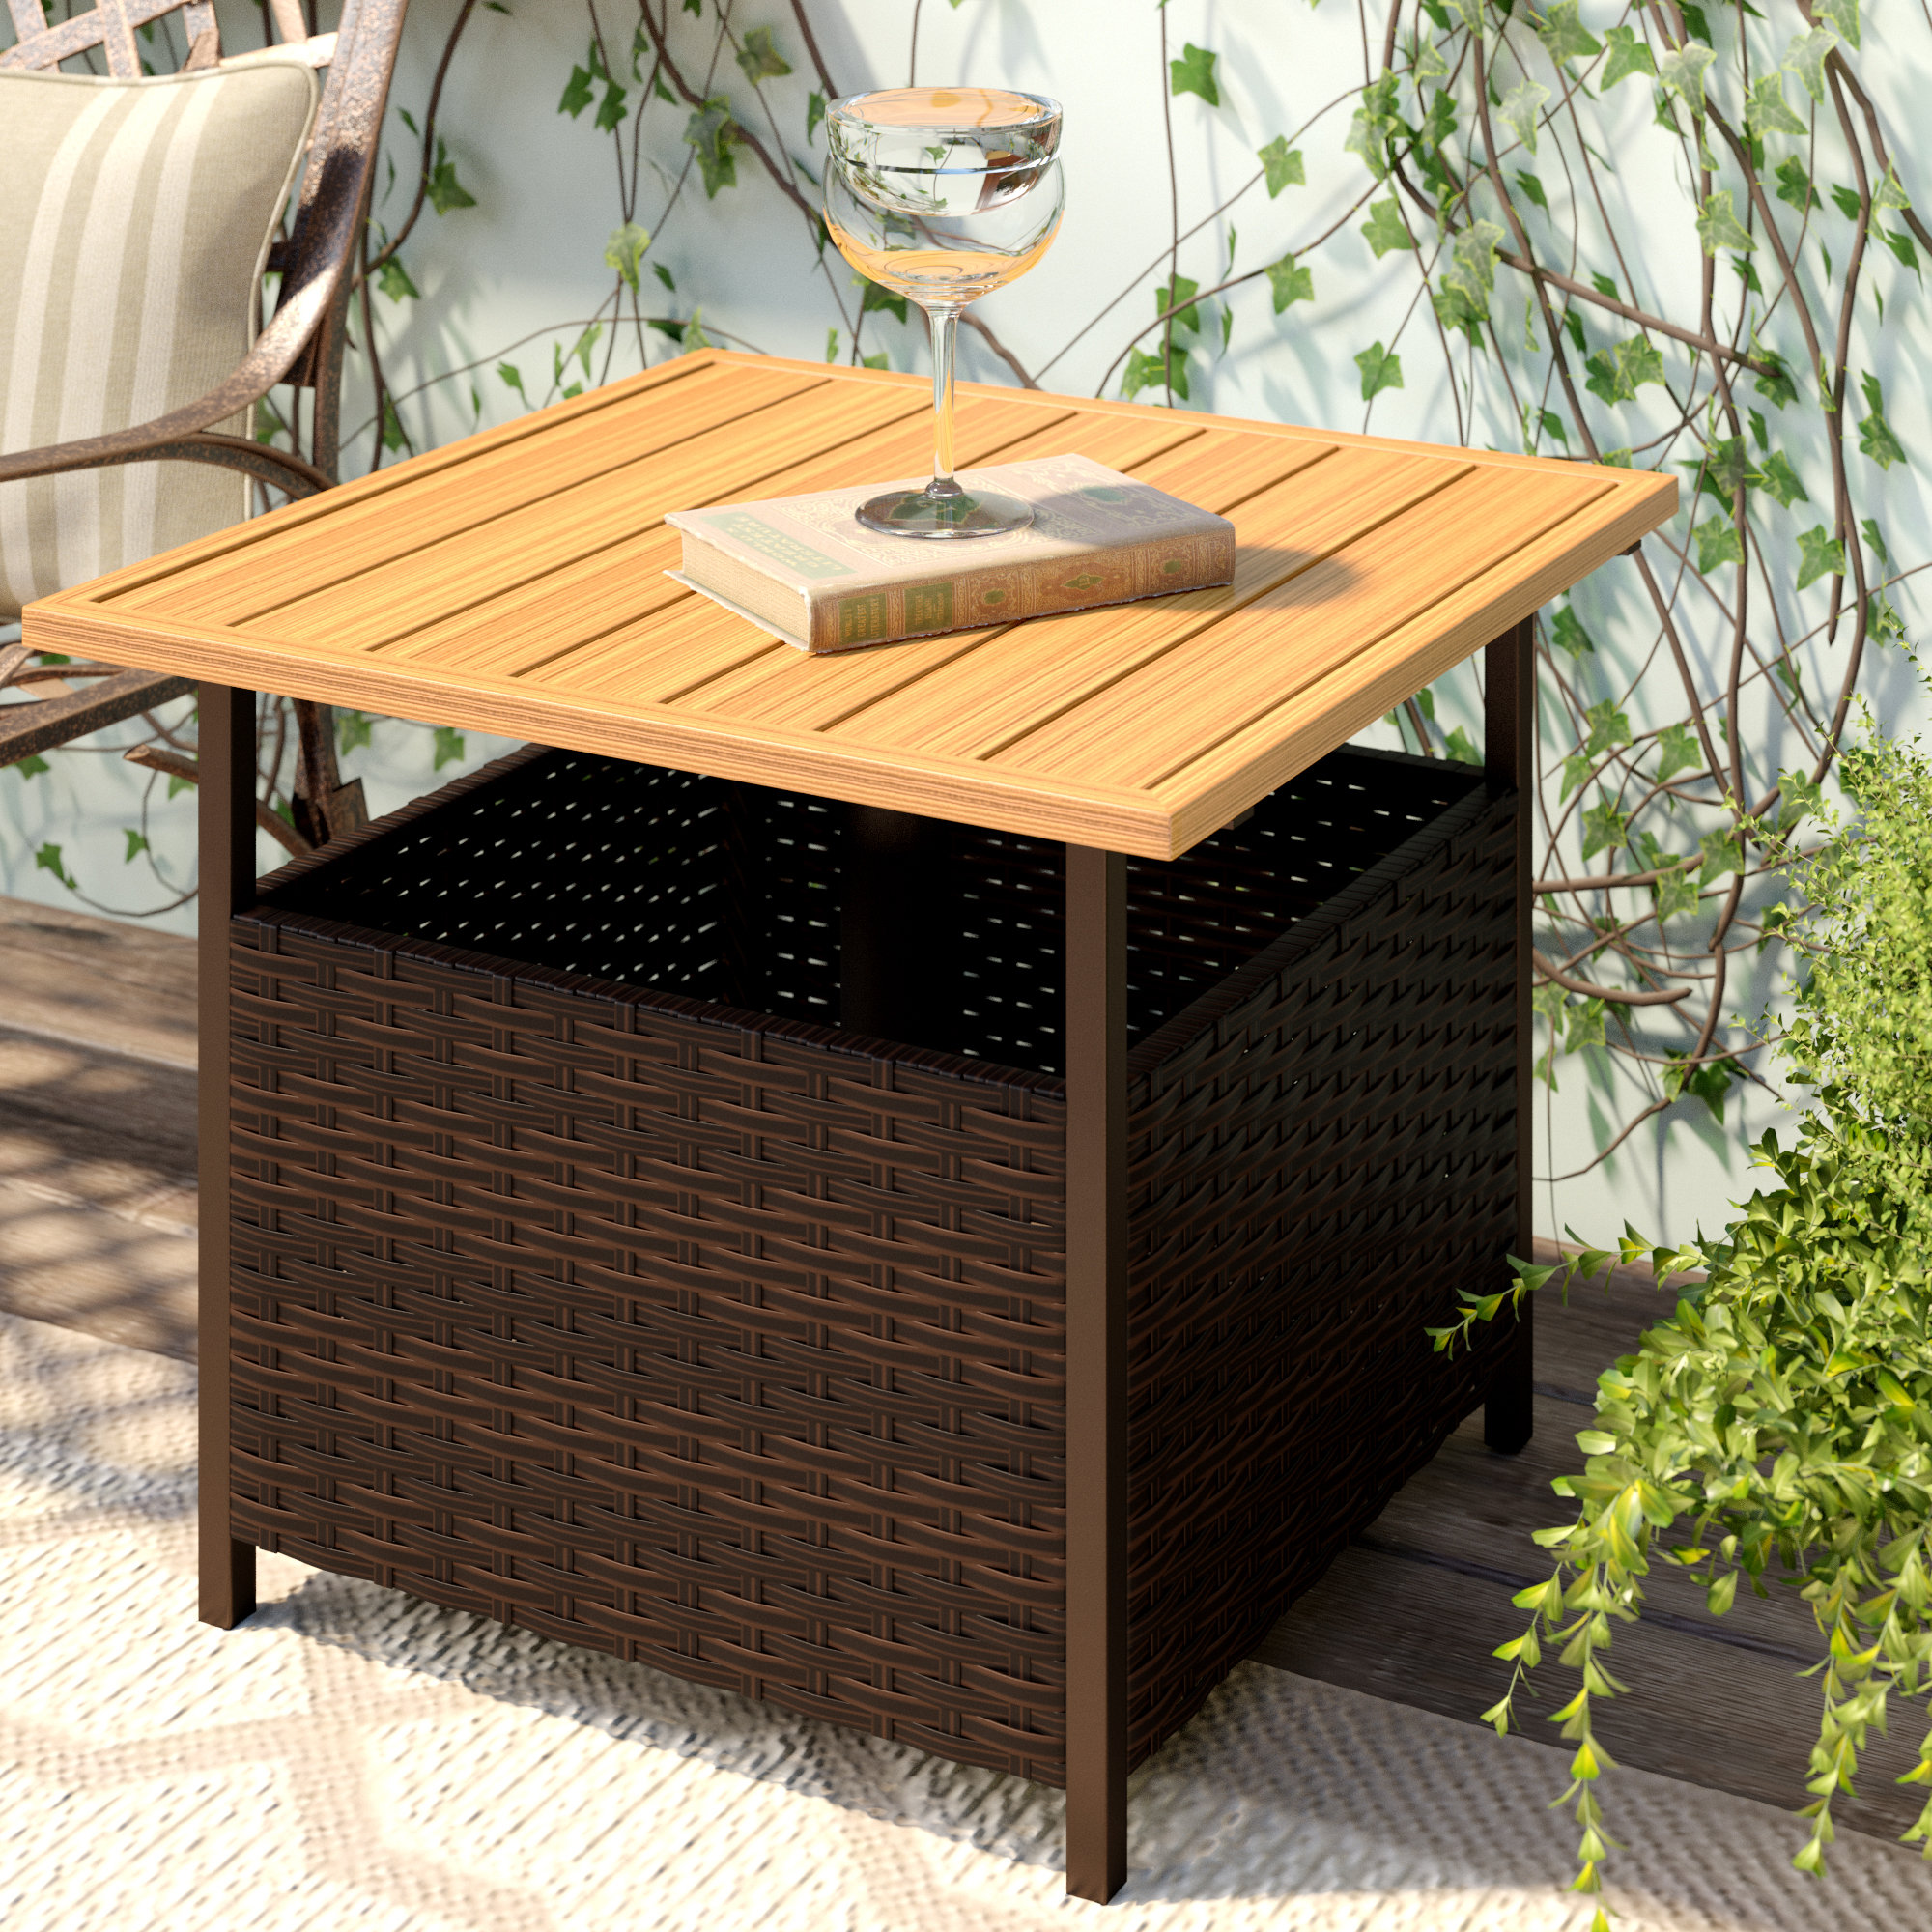 umbrella hole patio side tables you love flatiron wicker table outdoor rustic legs coffee tray target dining room arrangements glass and brass end cast aluminium garden furniture